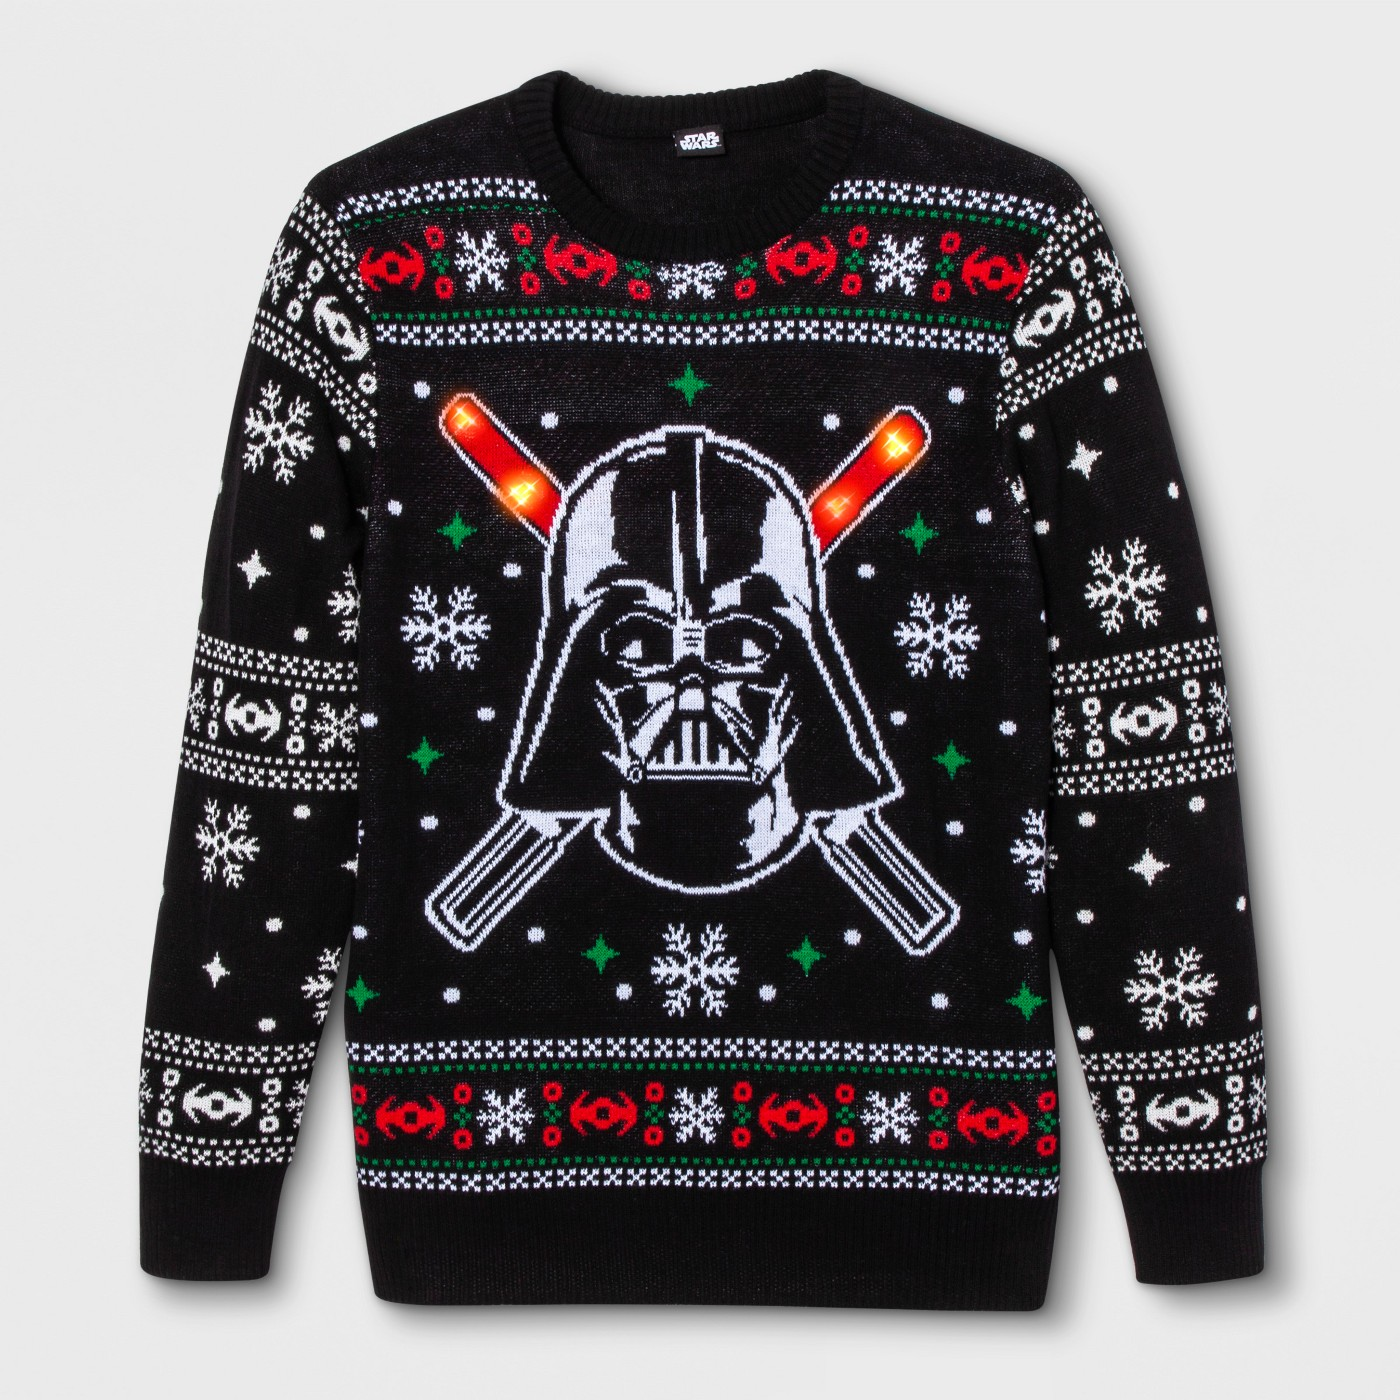 Geek Chic: Ugly Christmas Sweater Edition |